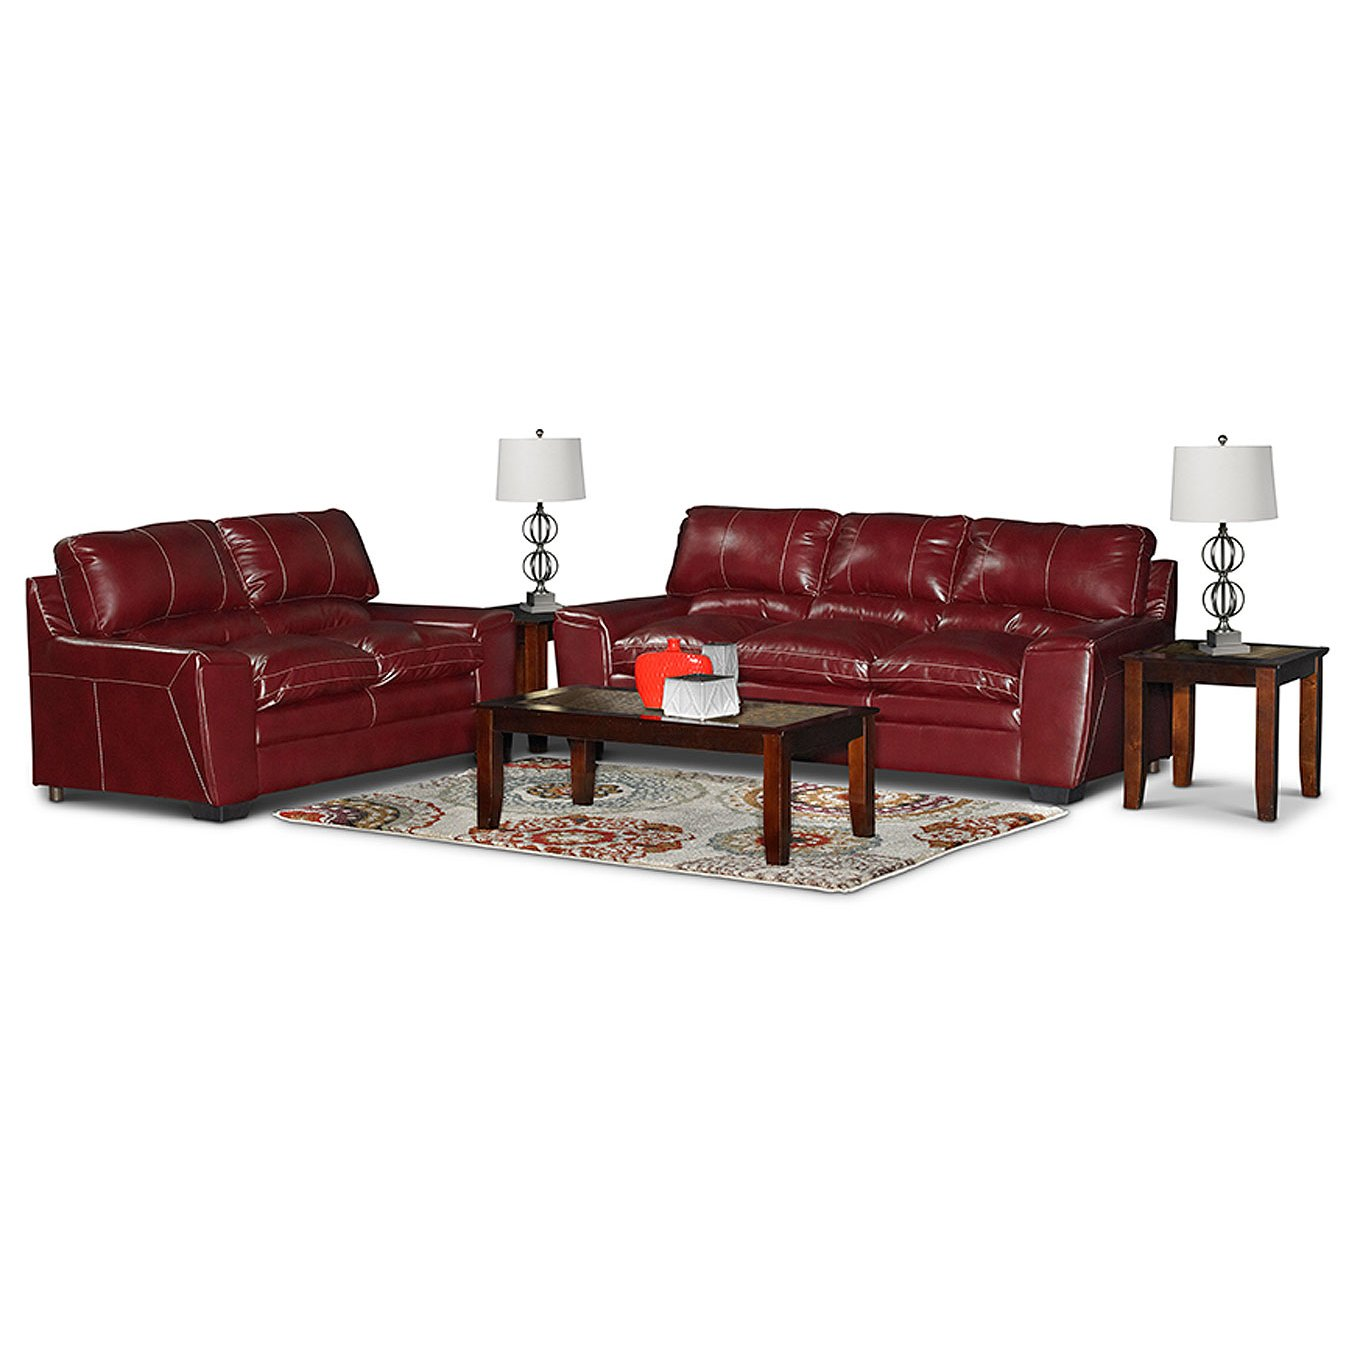 Casual Contemporary Red 5 Piece Living Room Set - Caruso | RC Willey ...